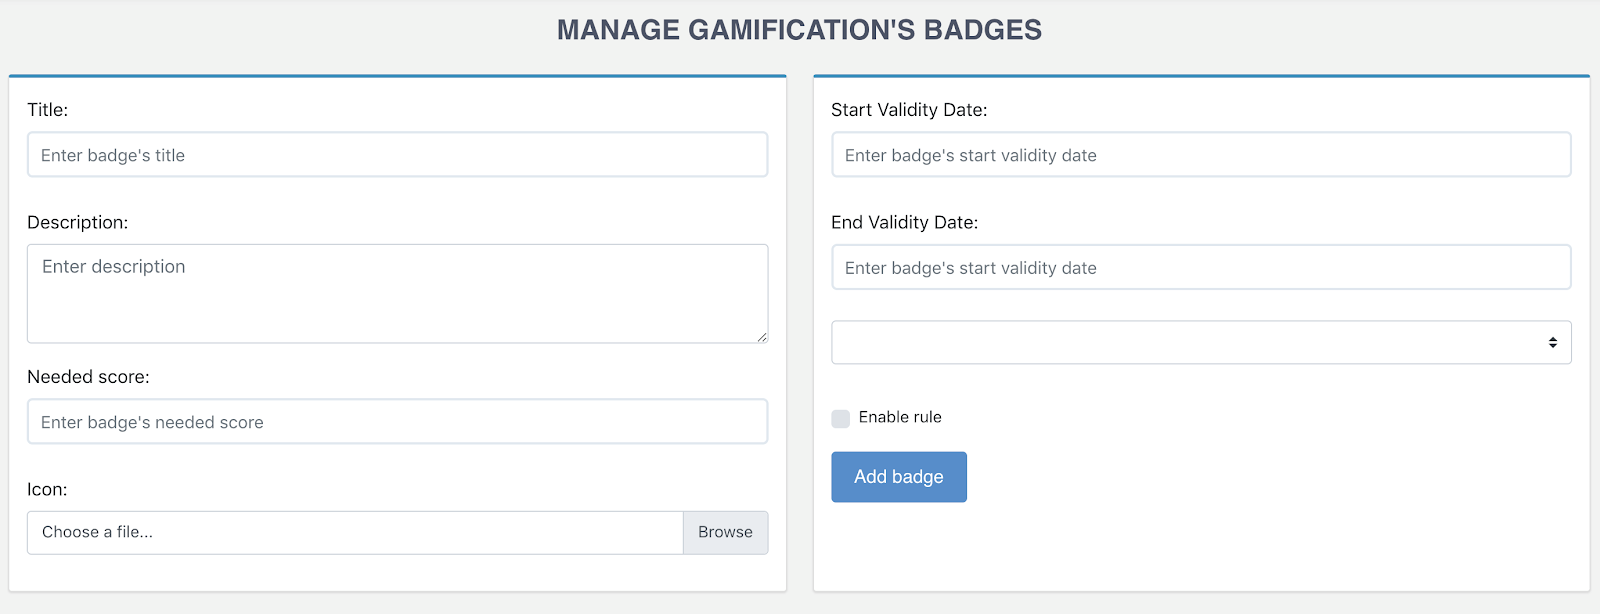 eXo Gamification add-on: Configure Gamification's Badges